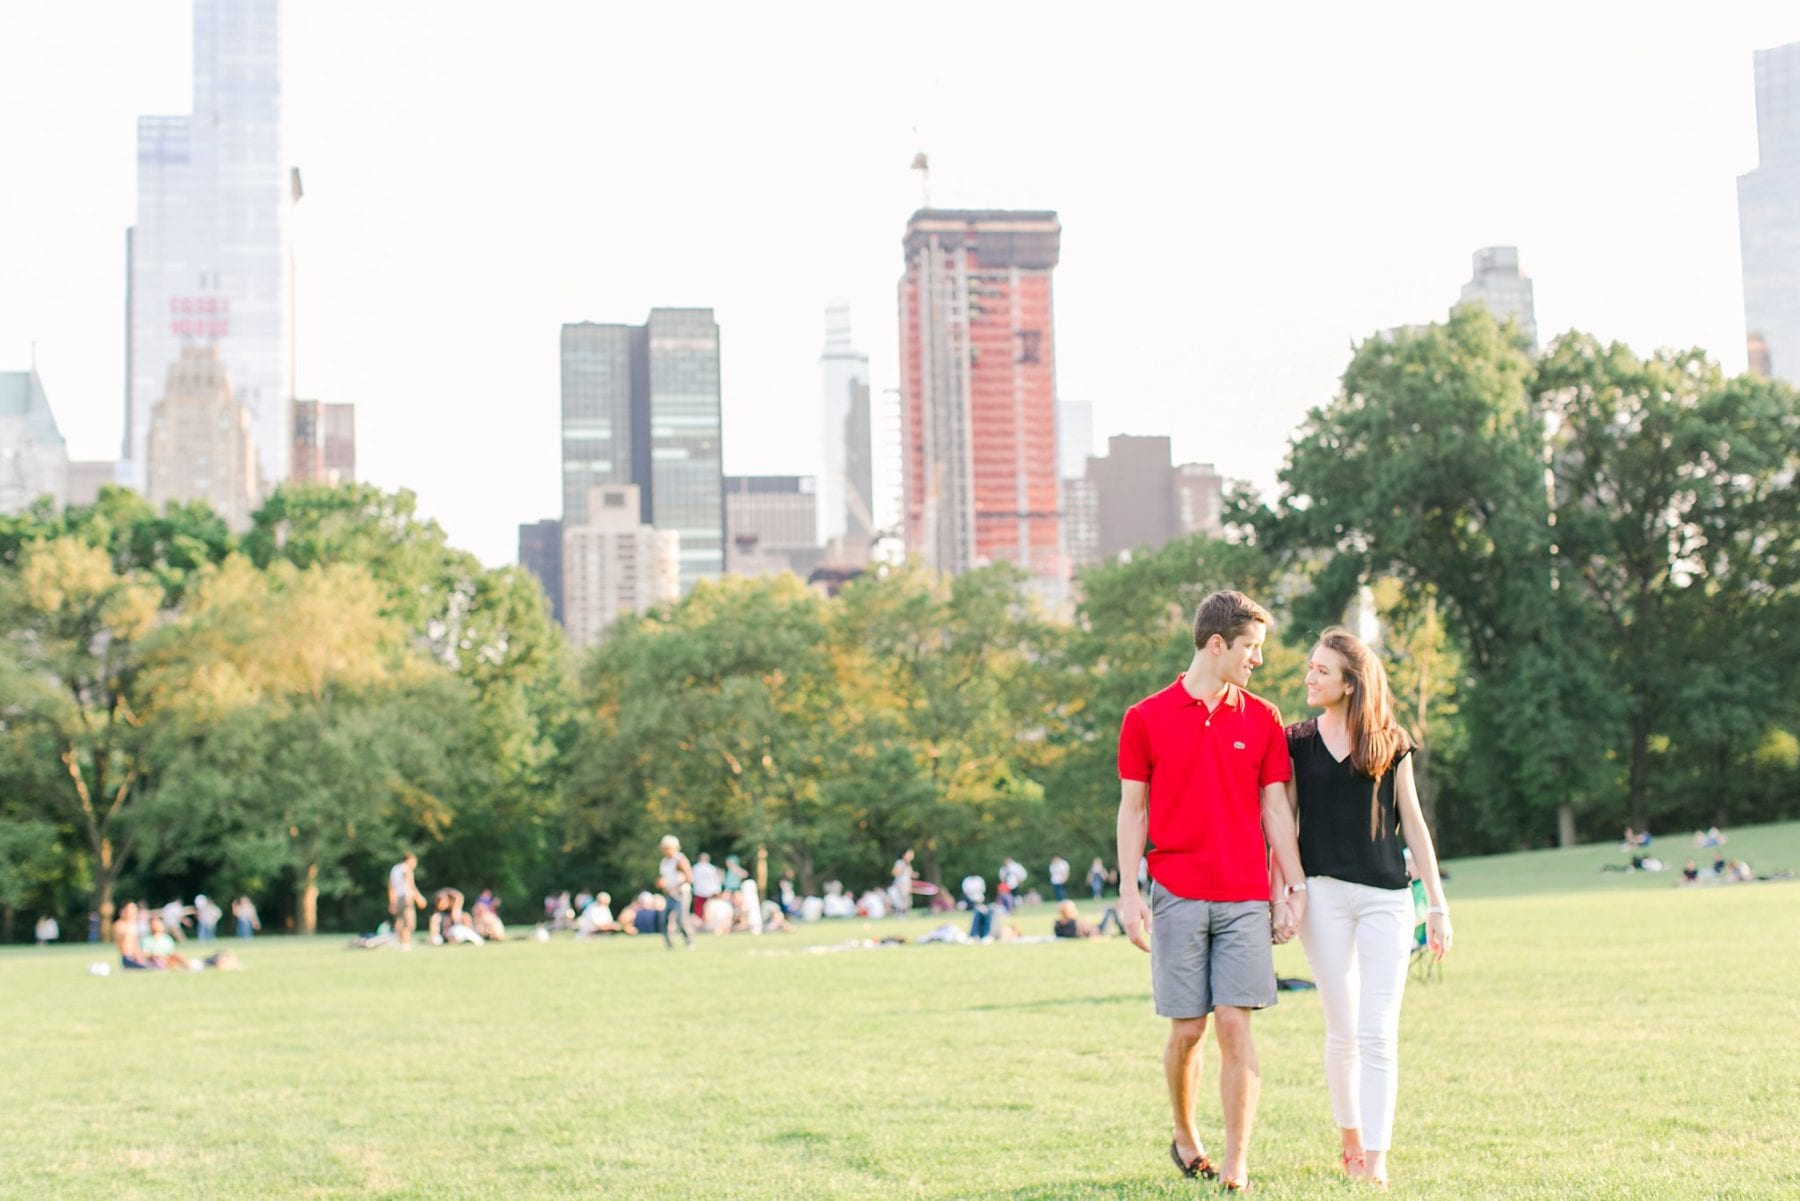 West Village Central Park Engagement Photos NYC Wedding Photographer Megan Kelsey Photography-207.jpg